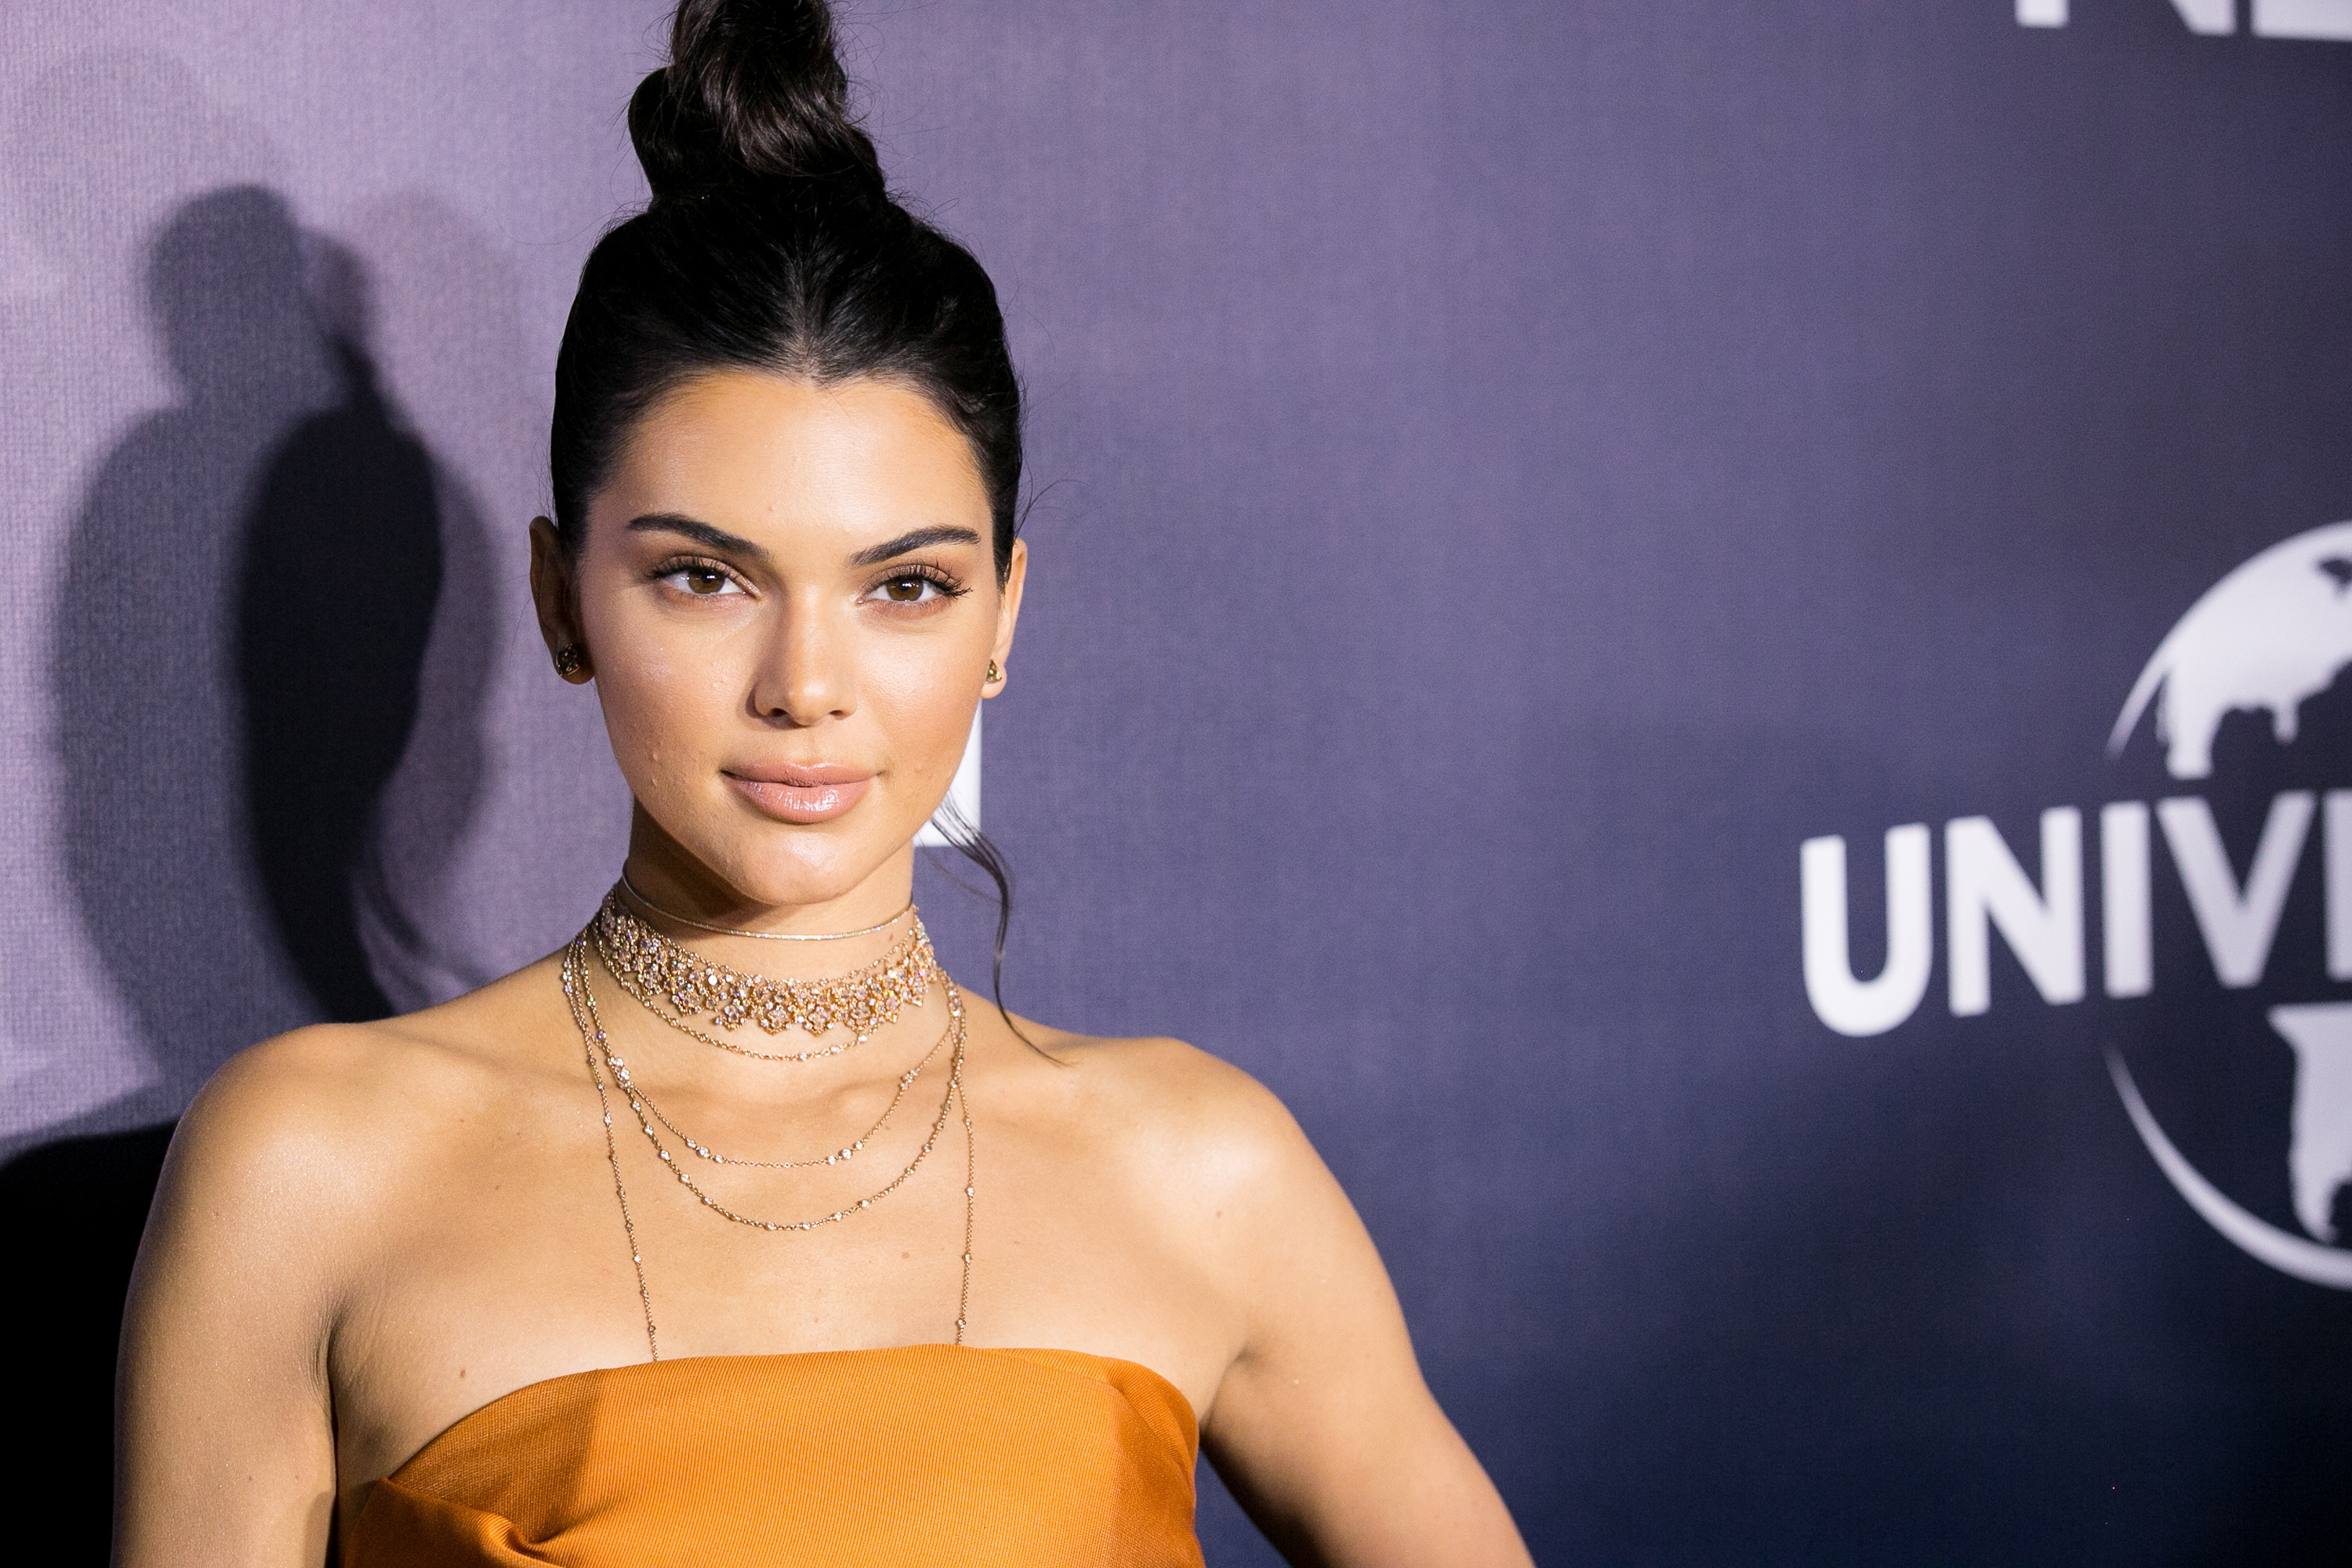 The fanny pack is back, y'all — just ask Kendall Jenner